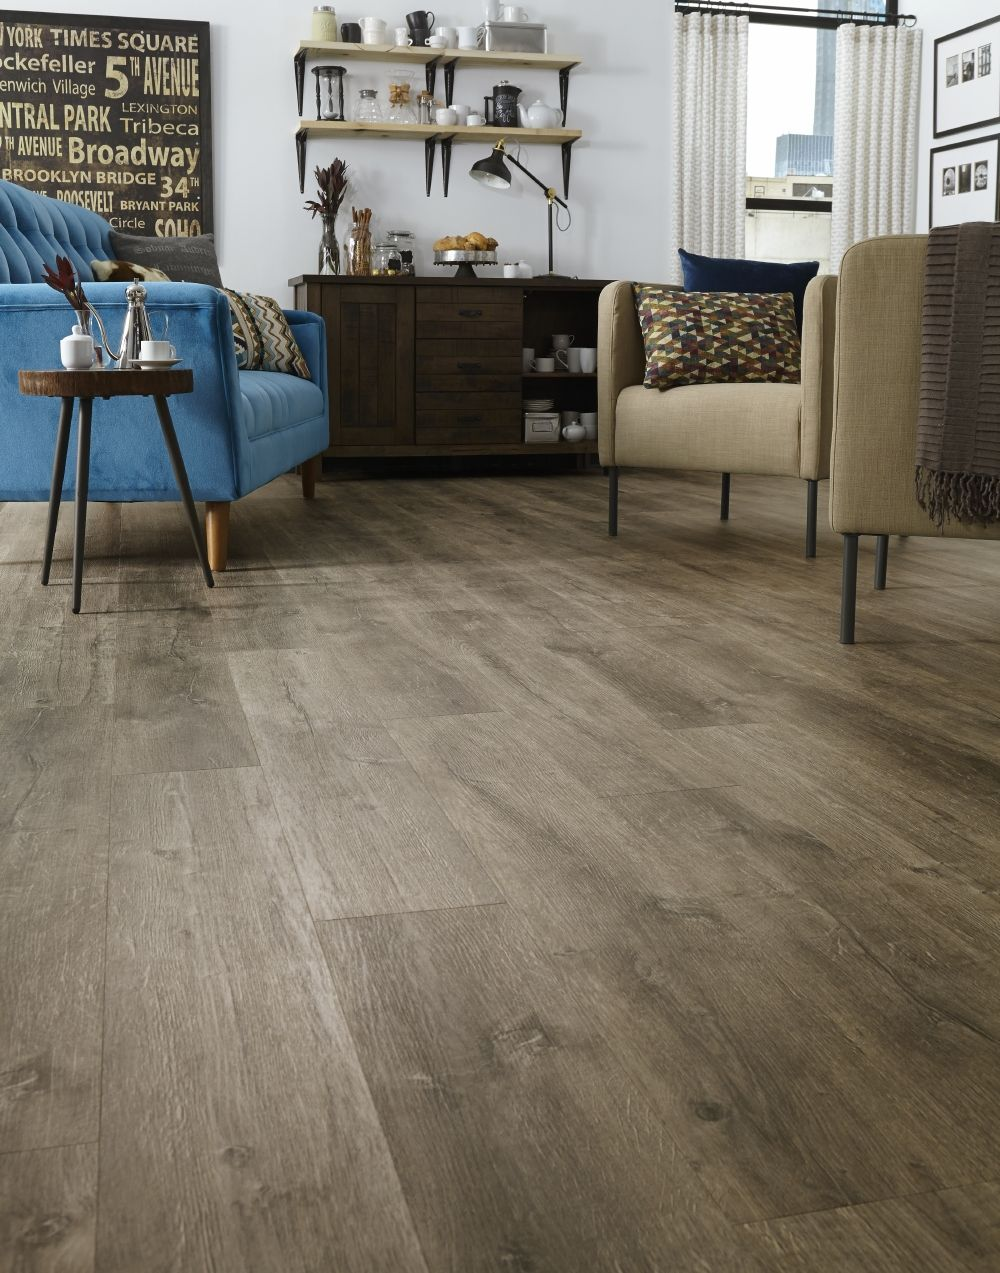 Luxury Vinyl Planks Adura Max From